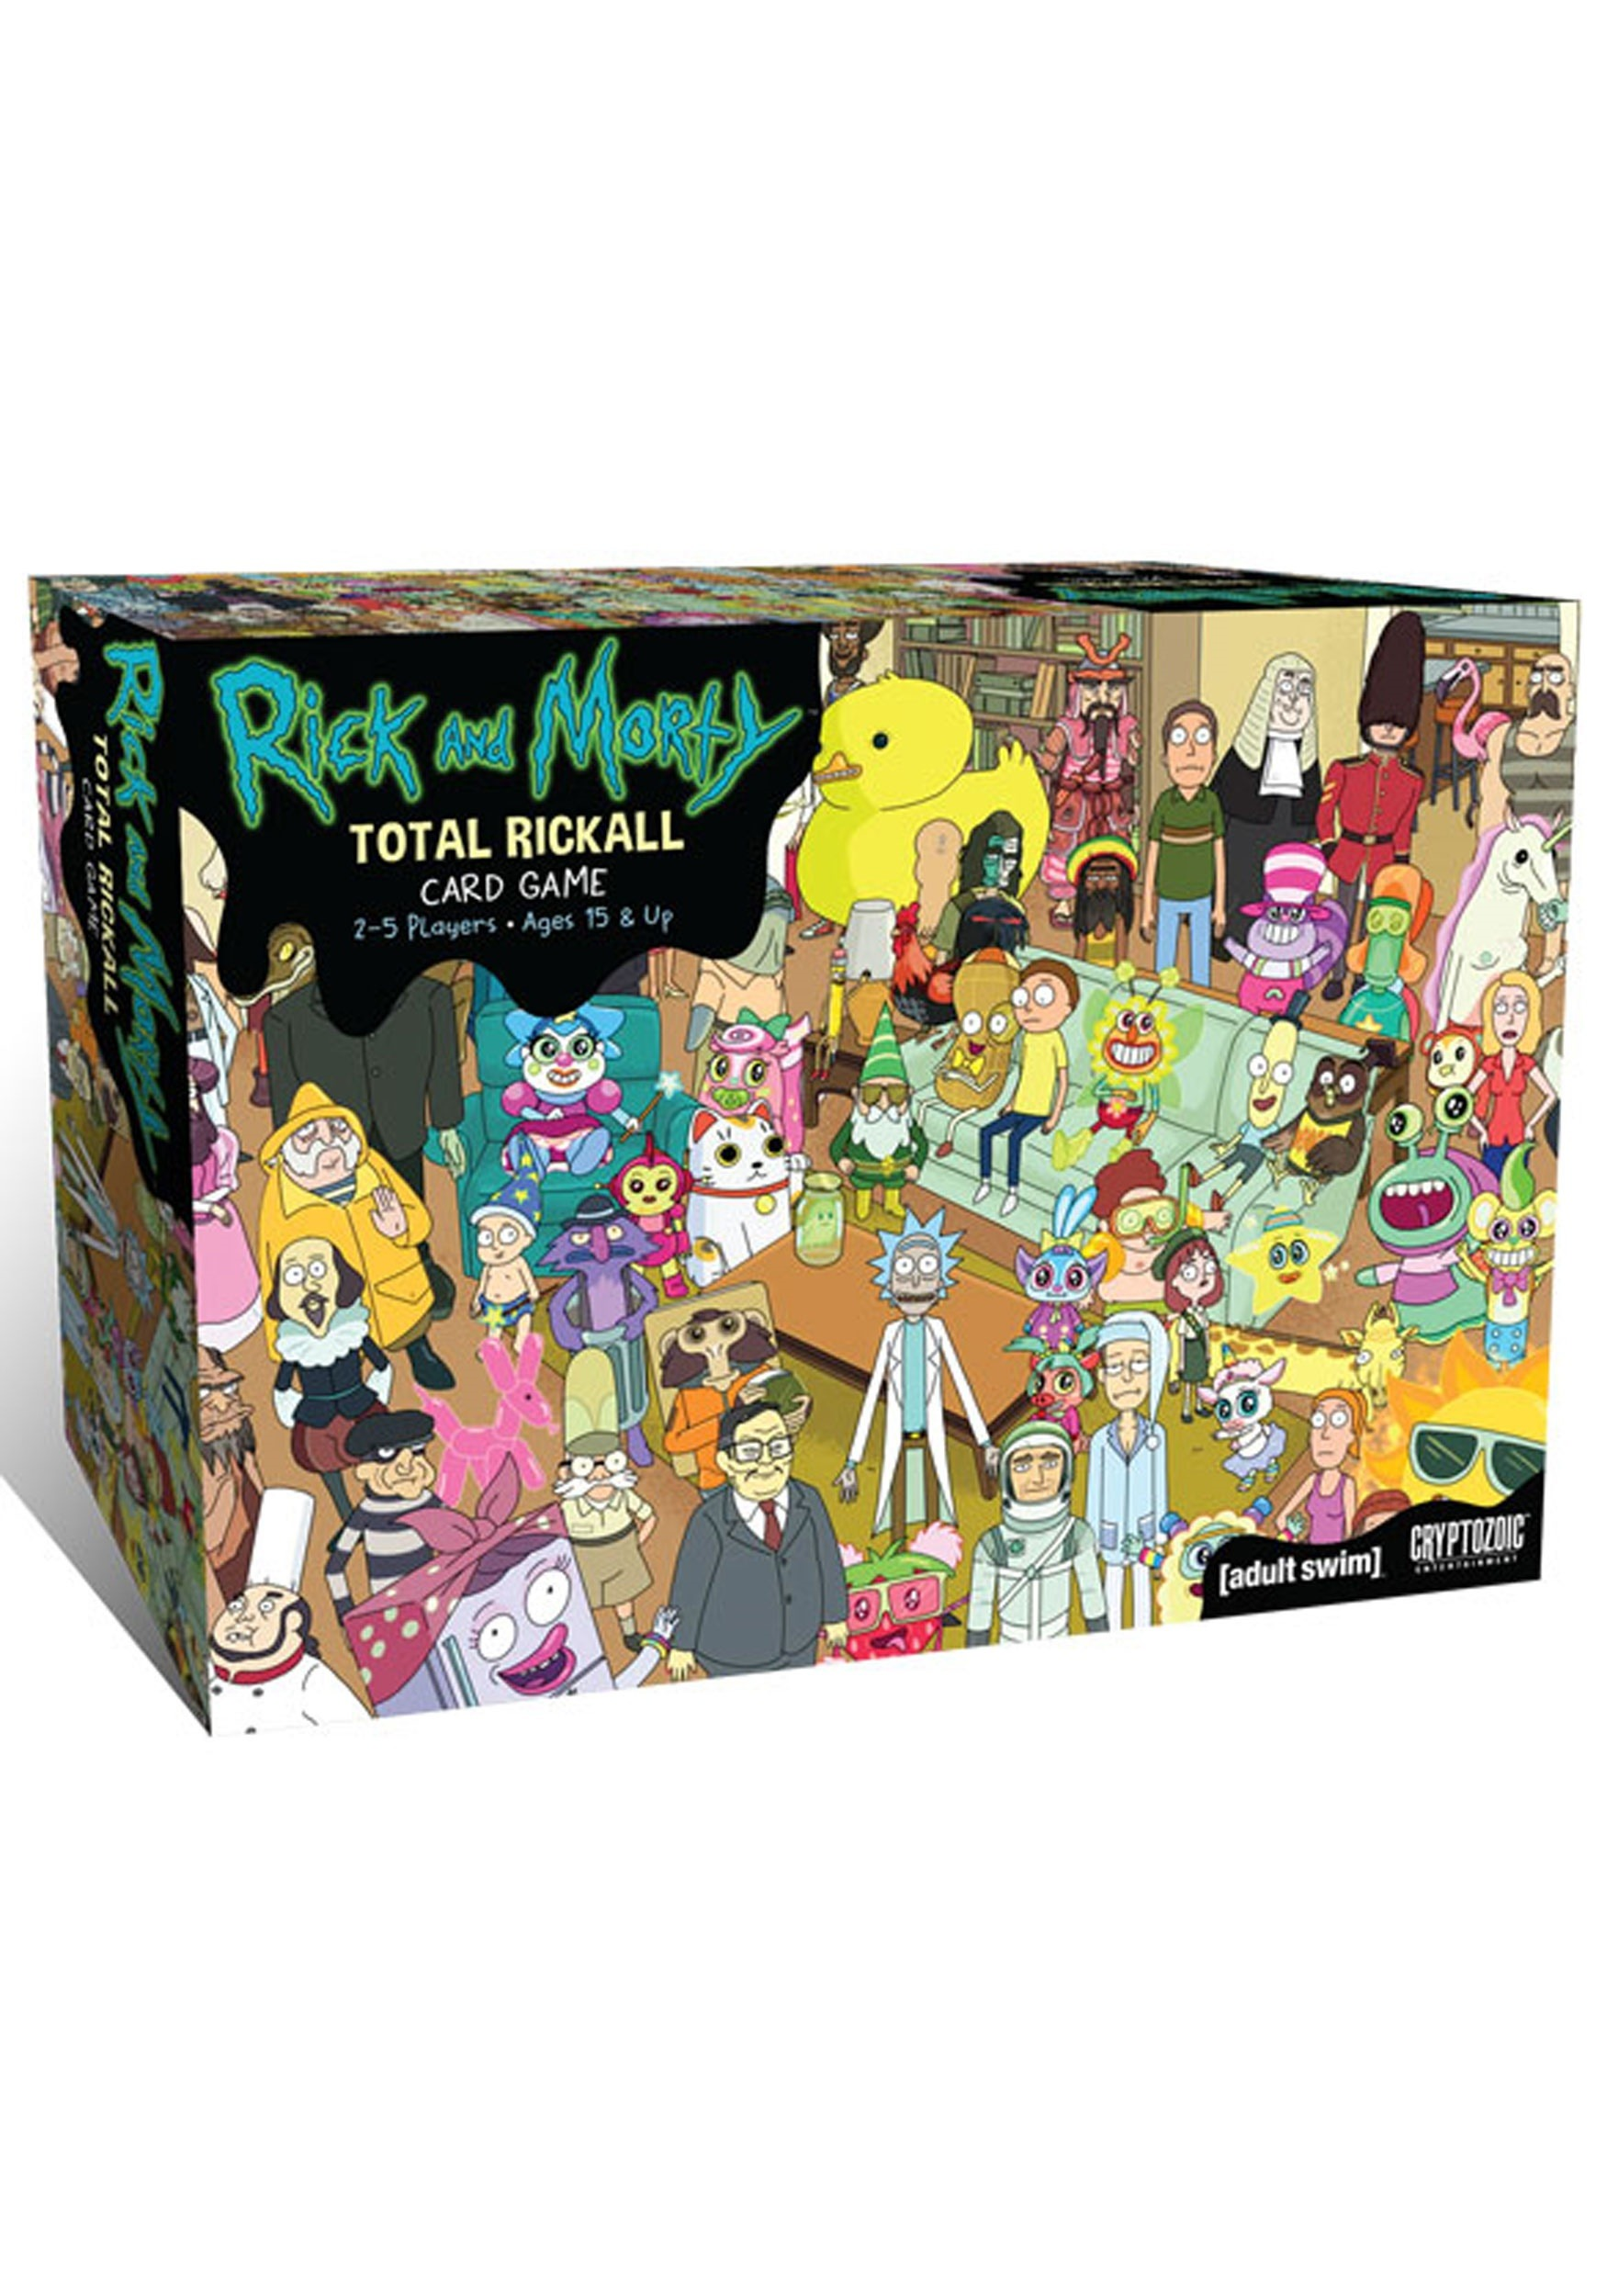 Total_Rickall_Cooperative_Card_Game:_Rick_and_Morty